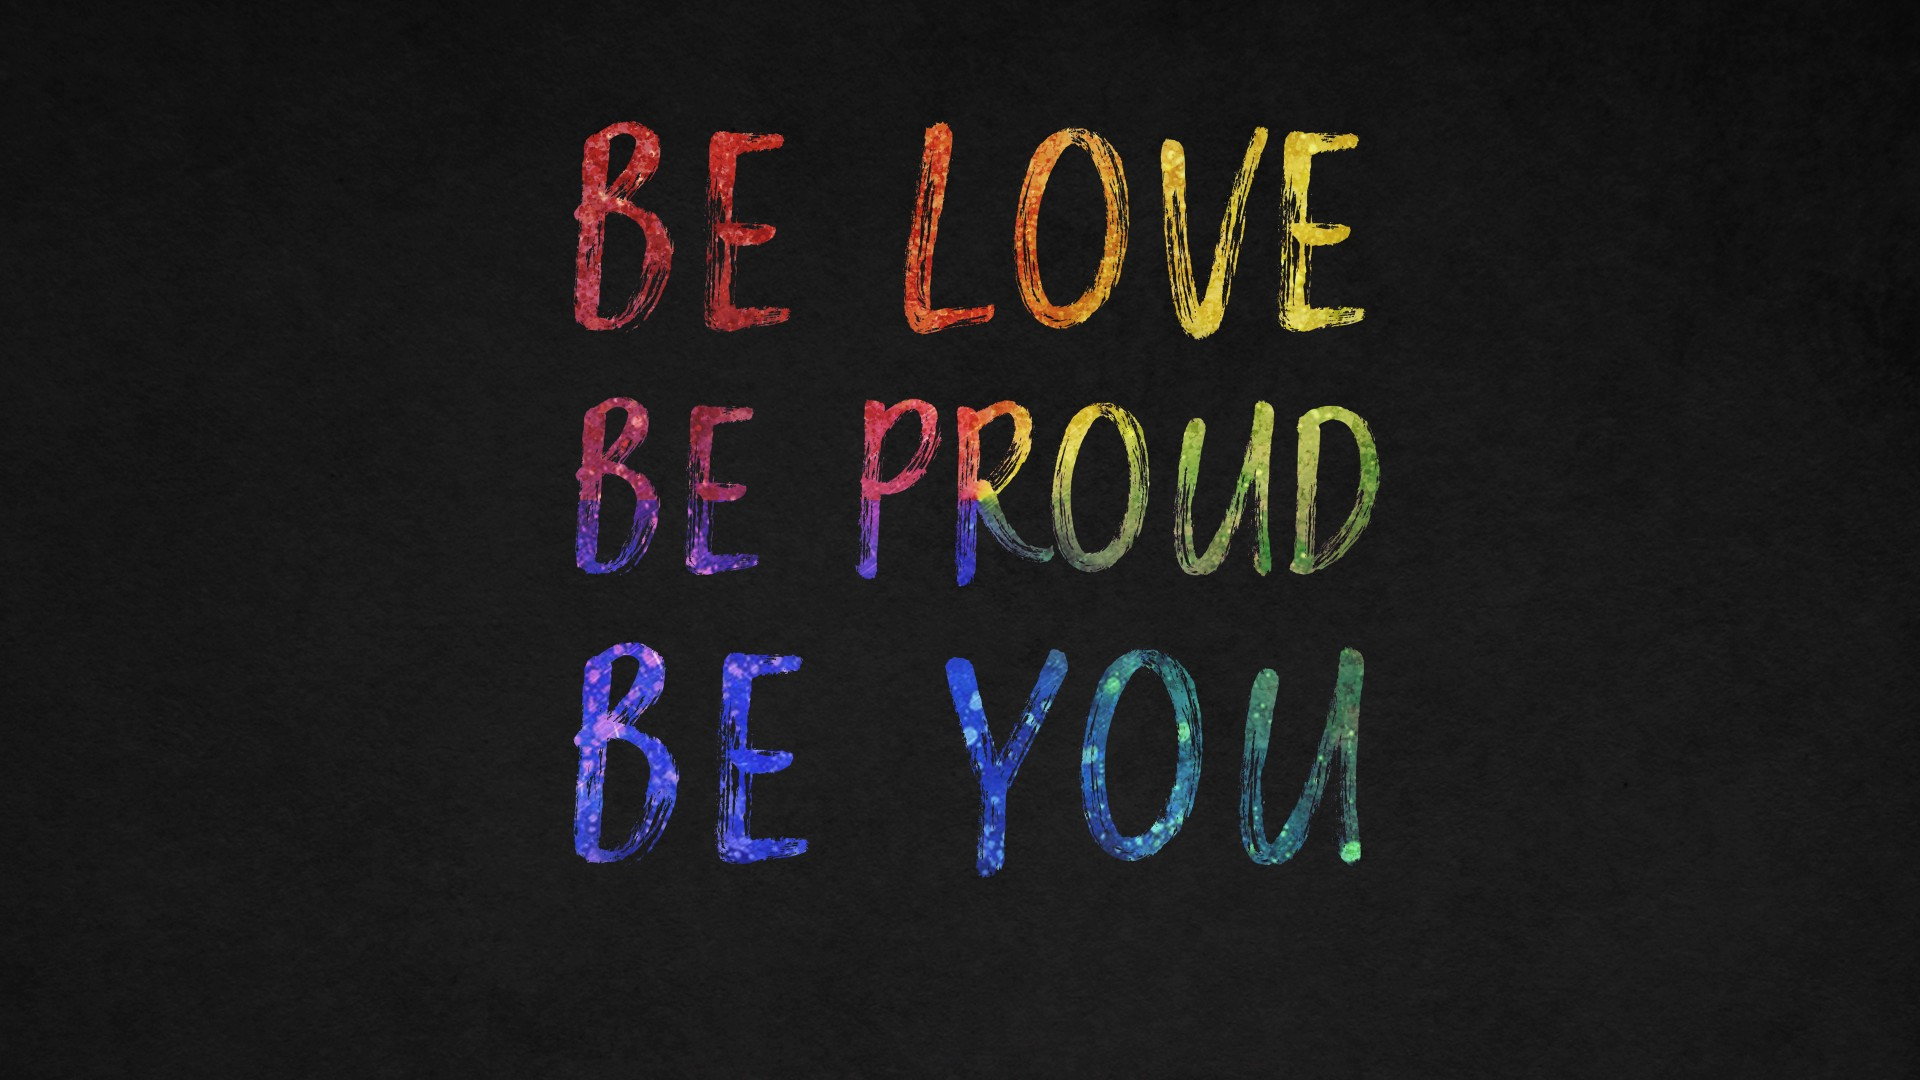 Cute Iphone 6 Wallpaper Hd Be Love Be Proud Be You Quotes 4k Wallpapers Hd